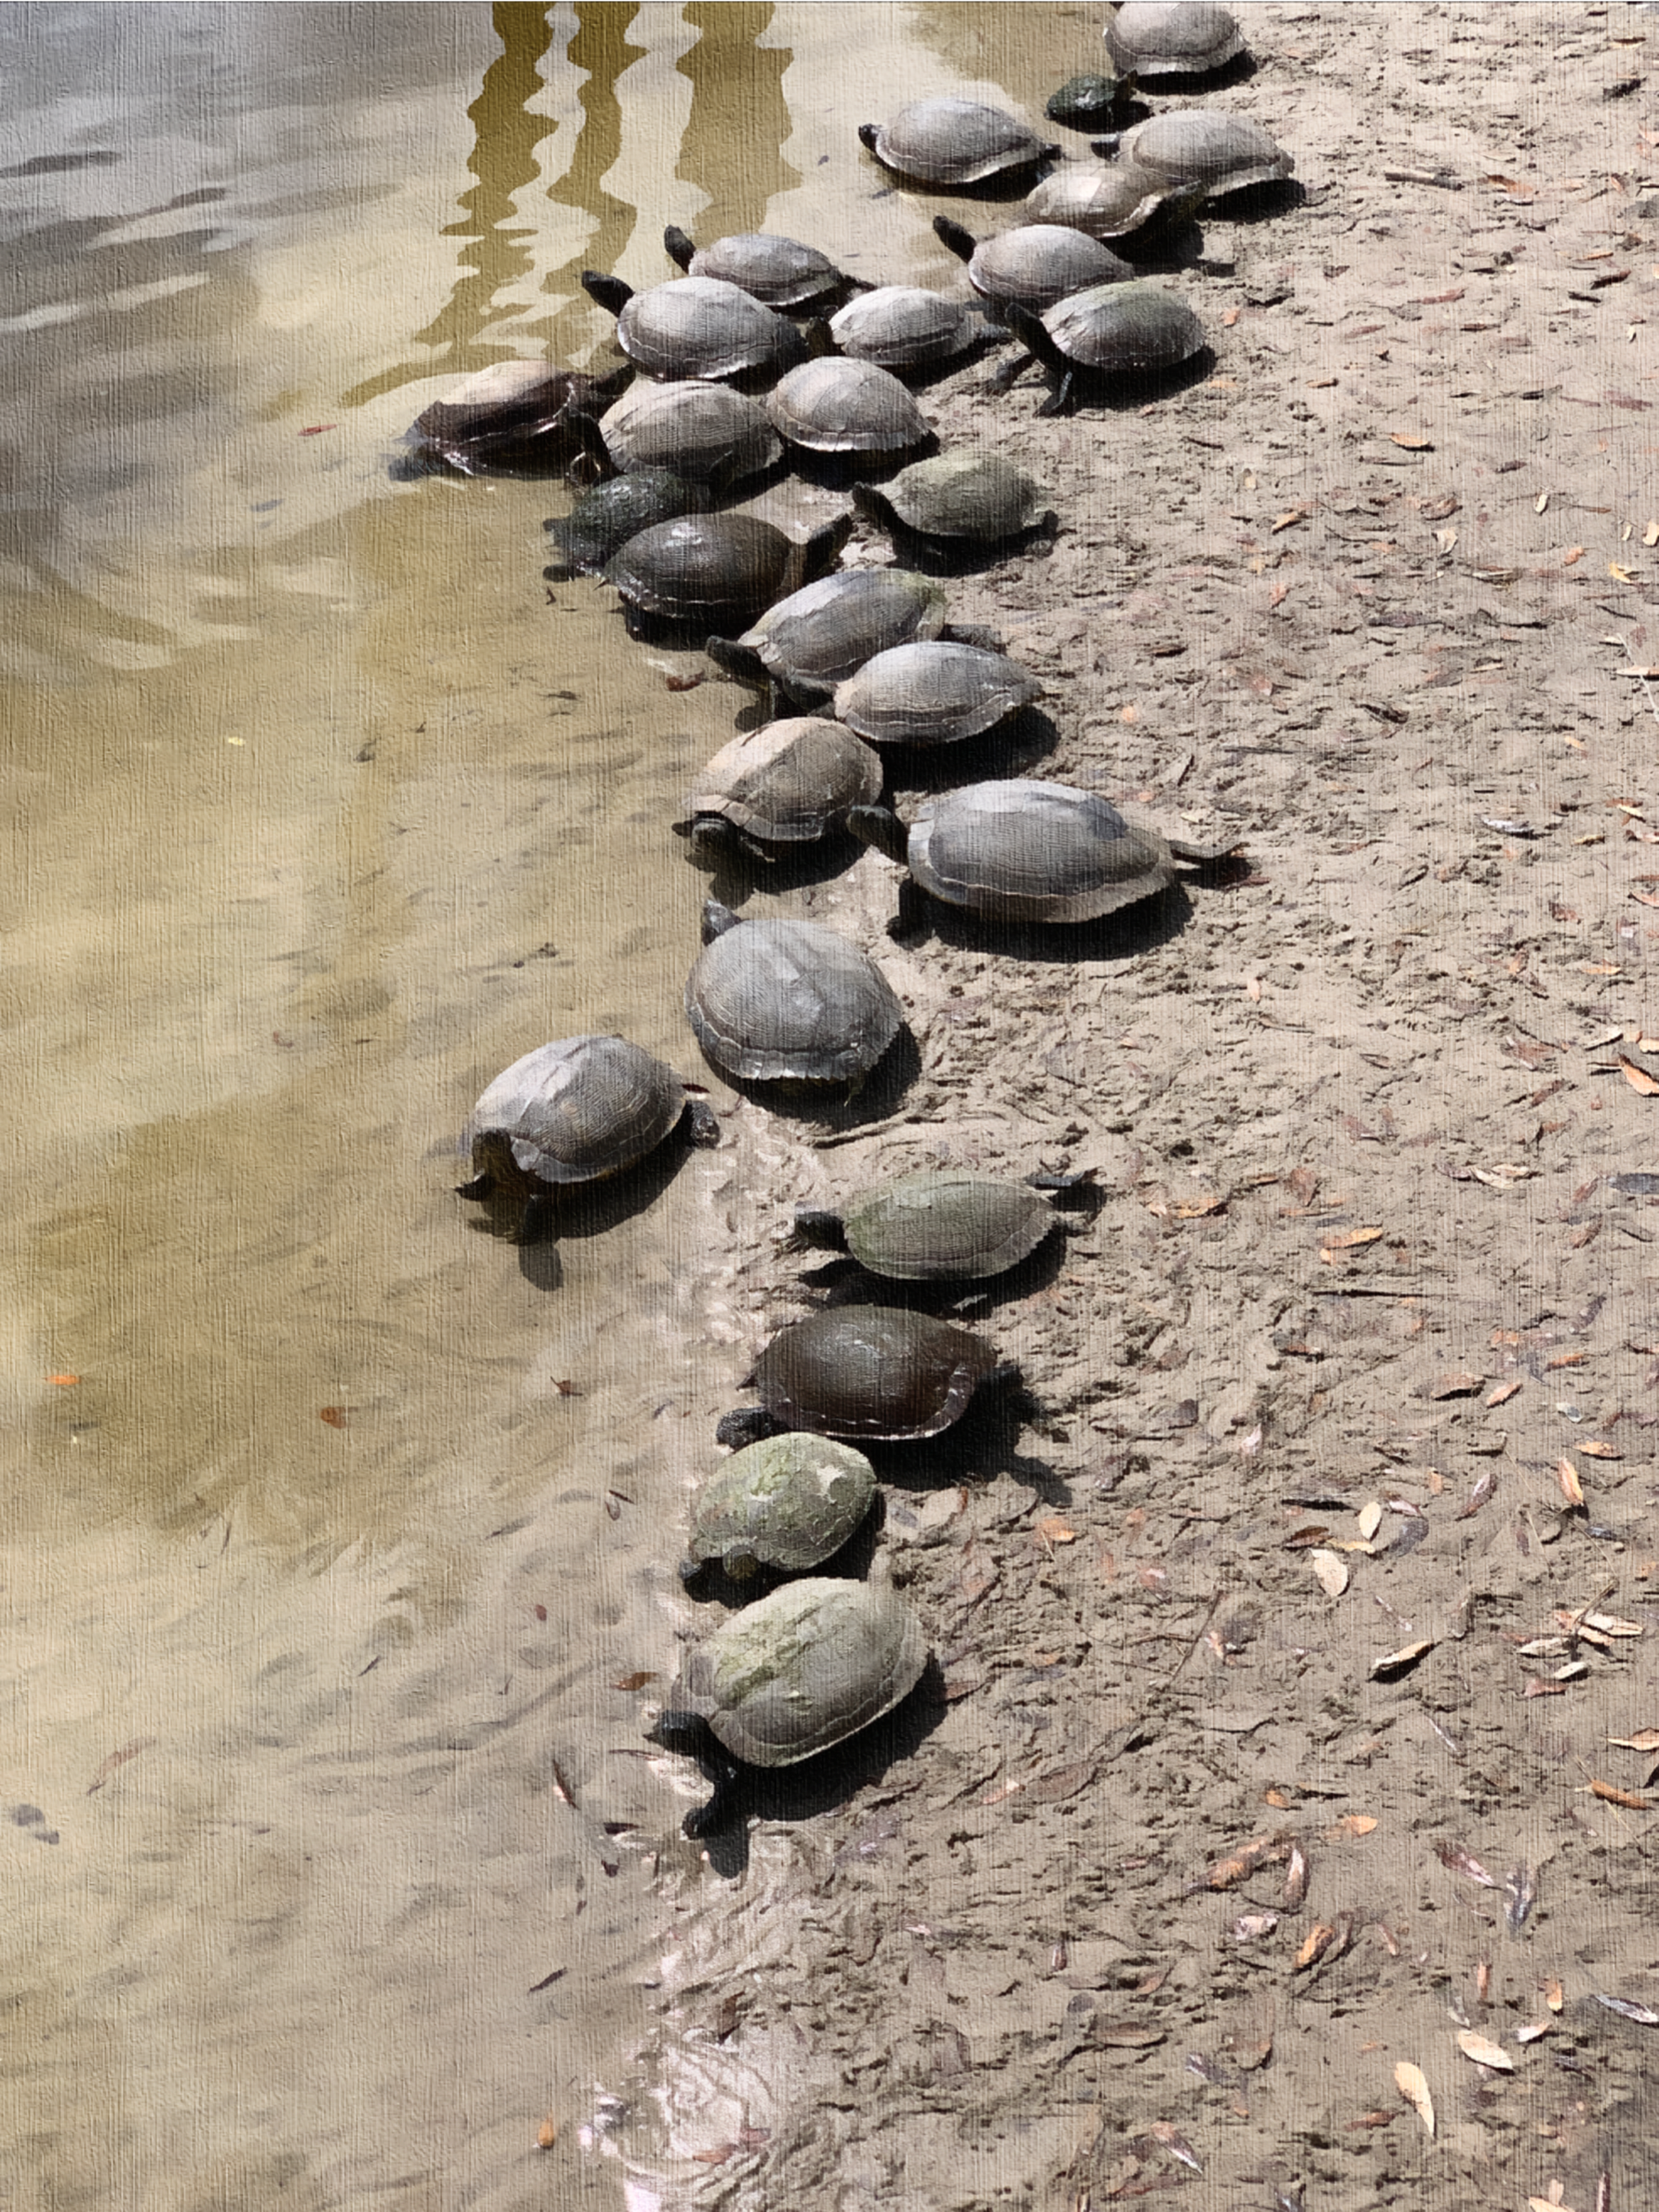 Like a herd of turtles… -